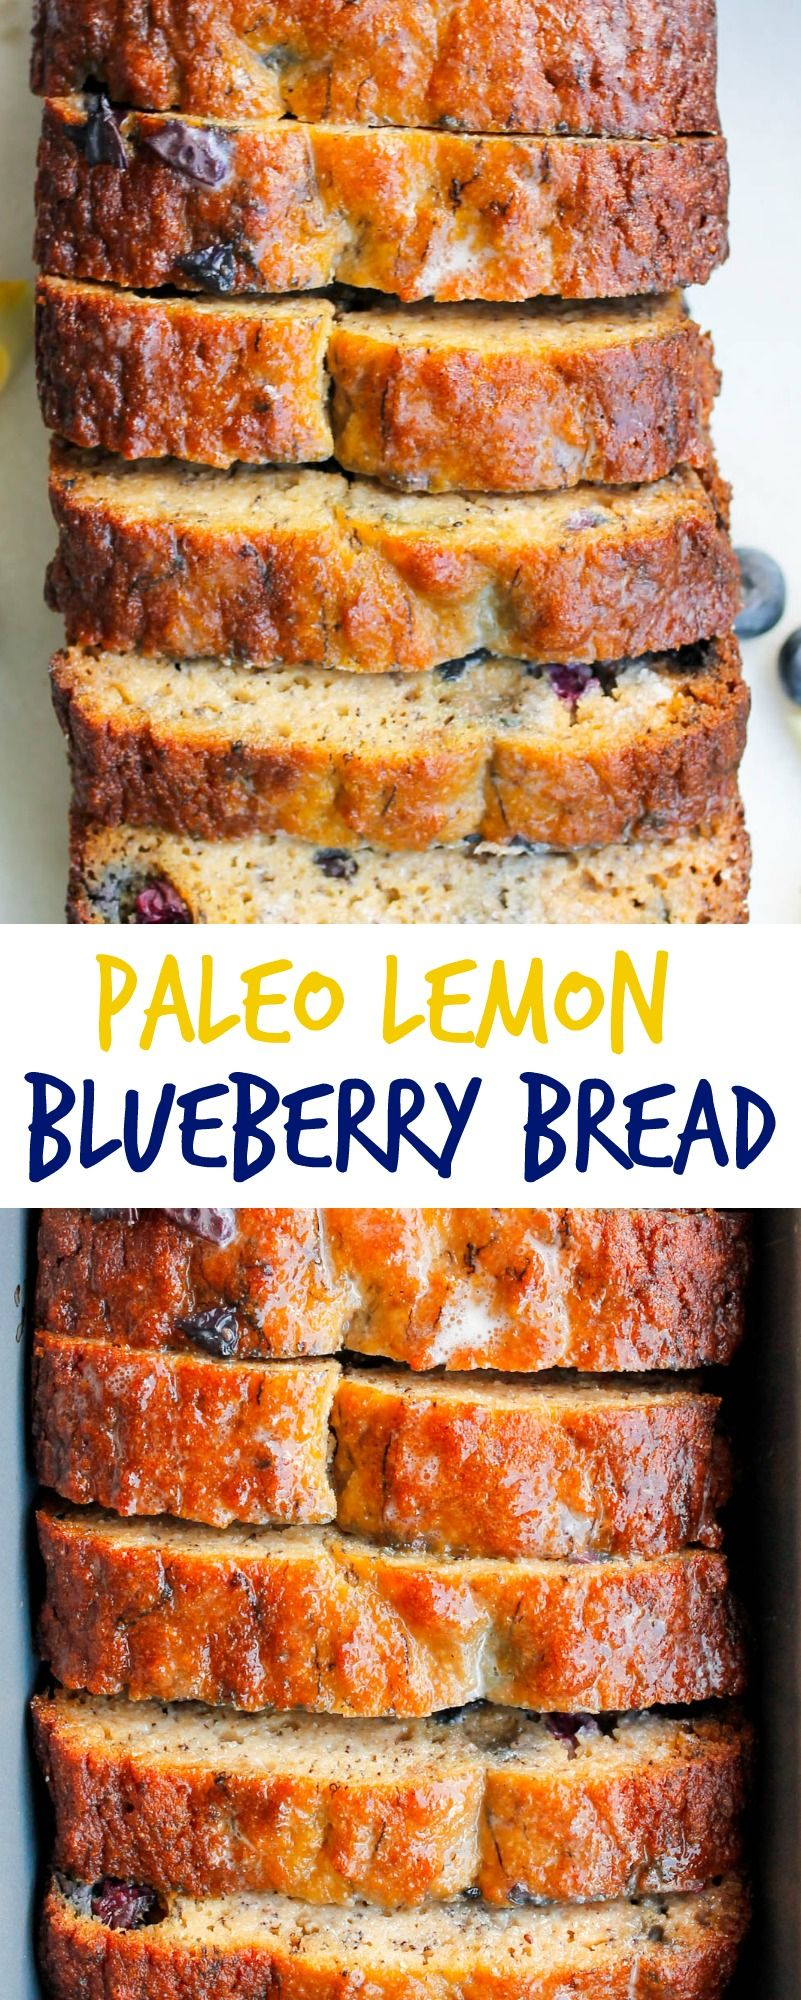 Photo of Paleo Lemon Blueberry Bread